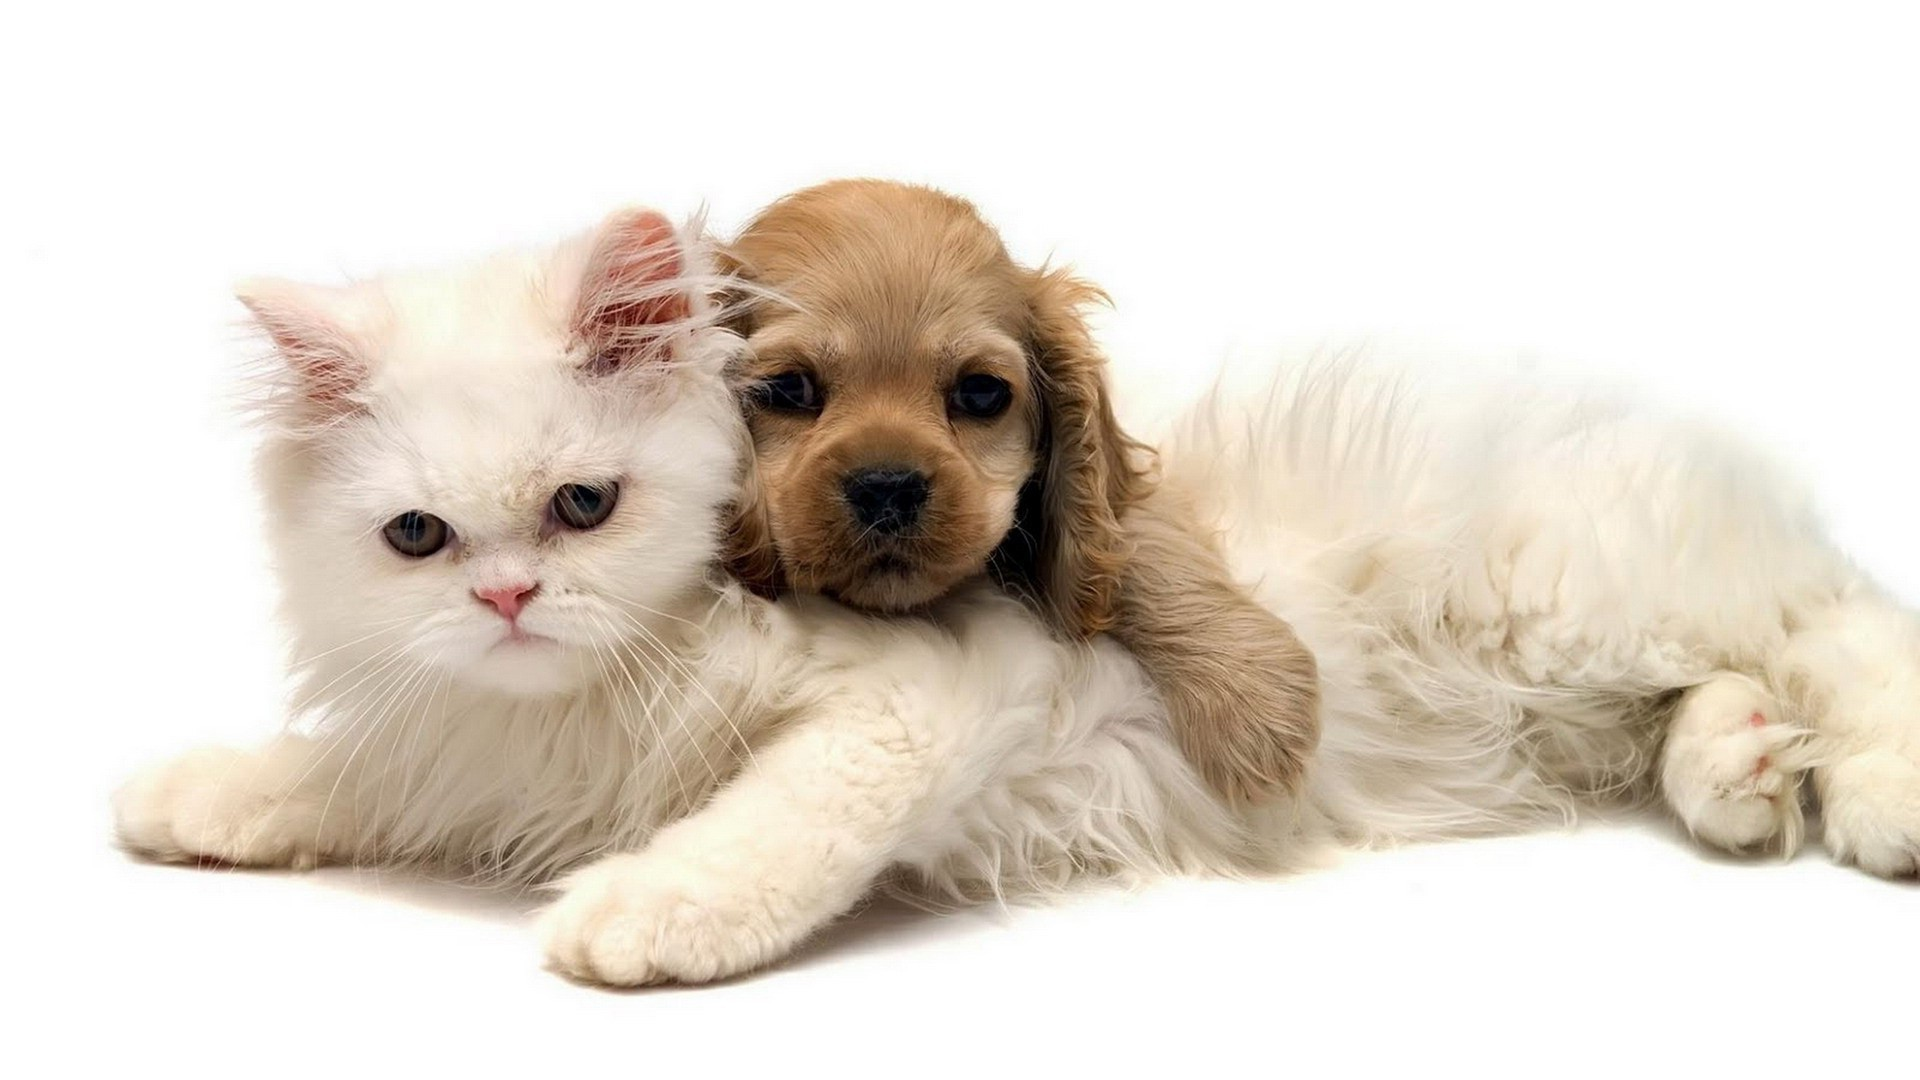 1920x1080 cats and kittens and dogs and puppies images gallery - PETS . ...